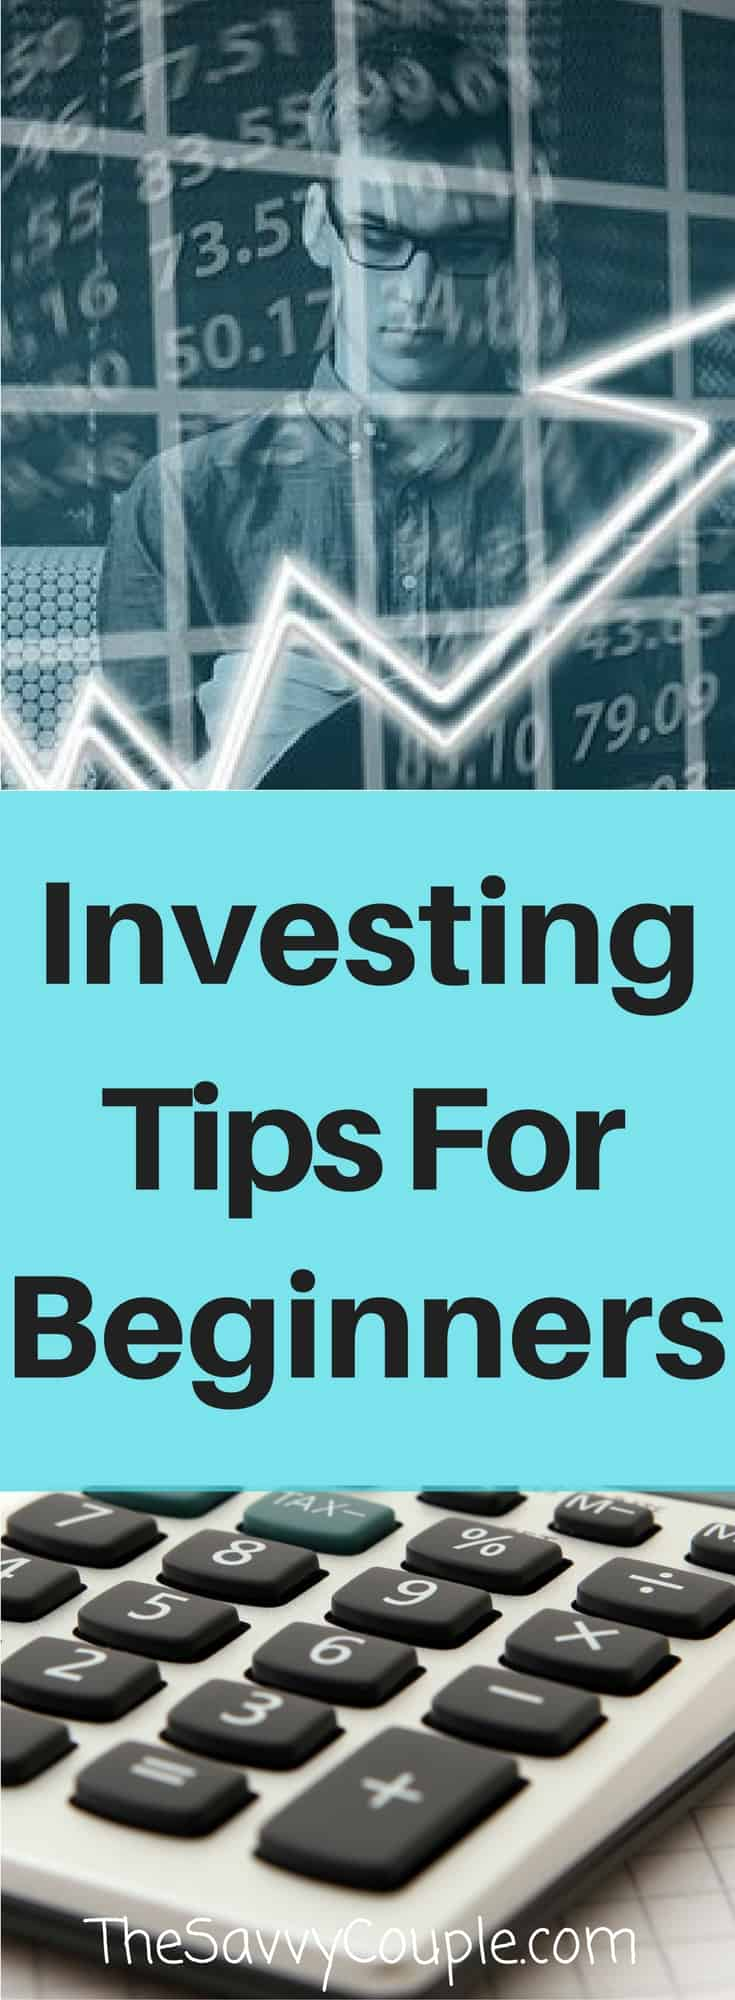 Here is what you need to know about investing in the stock market compared to putting your money in the bank. Let your money work for you! l stock market investing tips l retirement tips   how to invest   save for retirement   what to know about investing   investment   financial freedom   frugal living   pay off debt